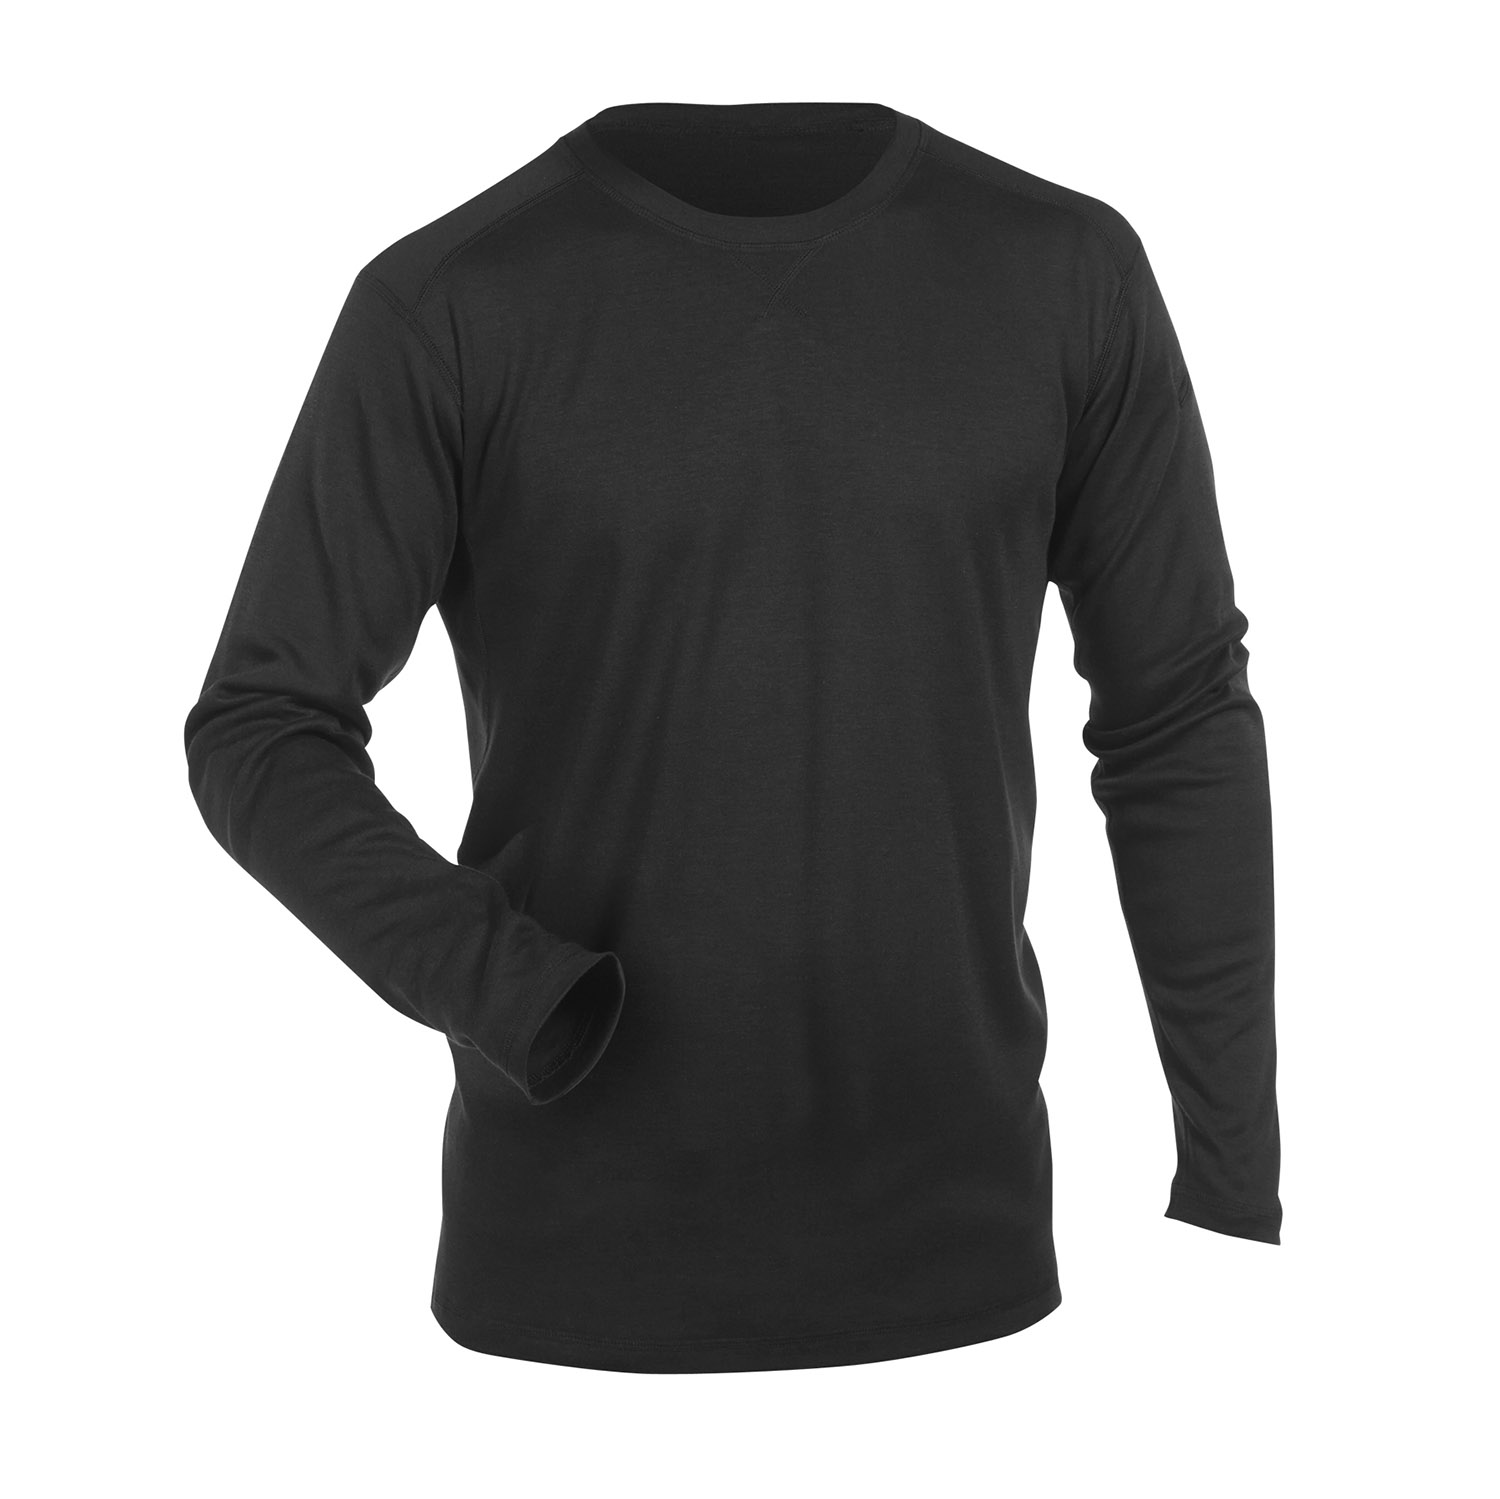 5.11 Tactical FR Polartec Long Sleeve Shirt